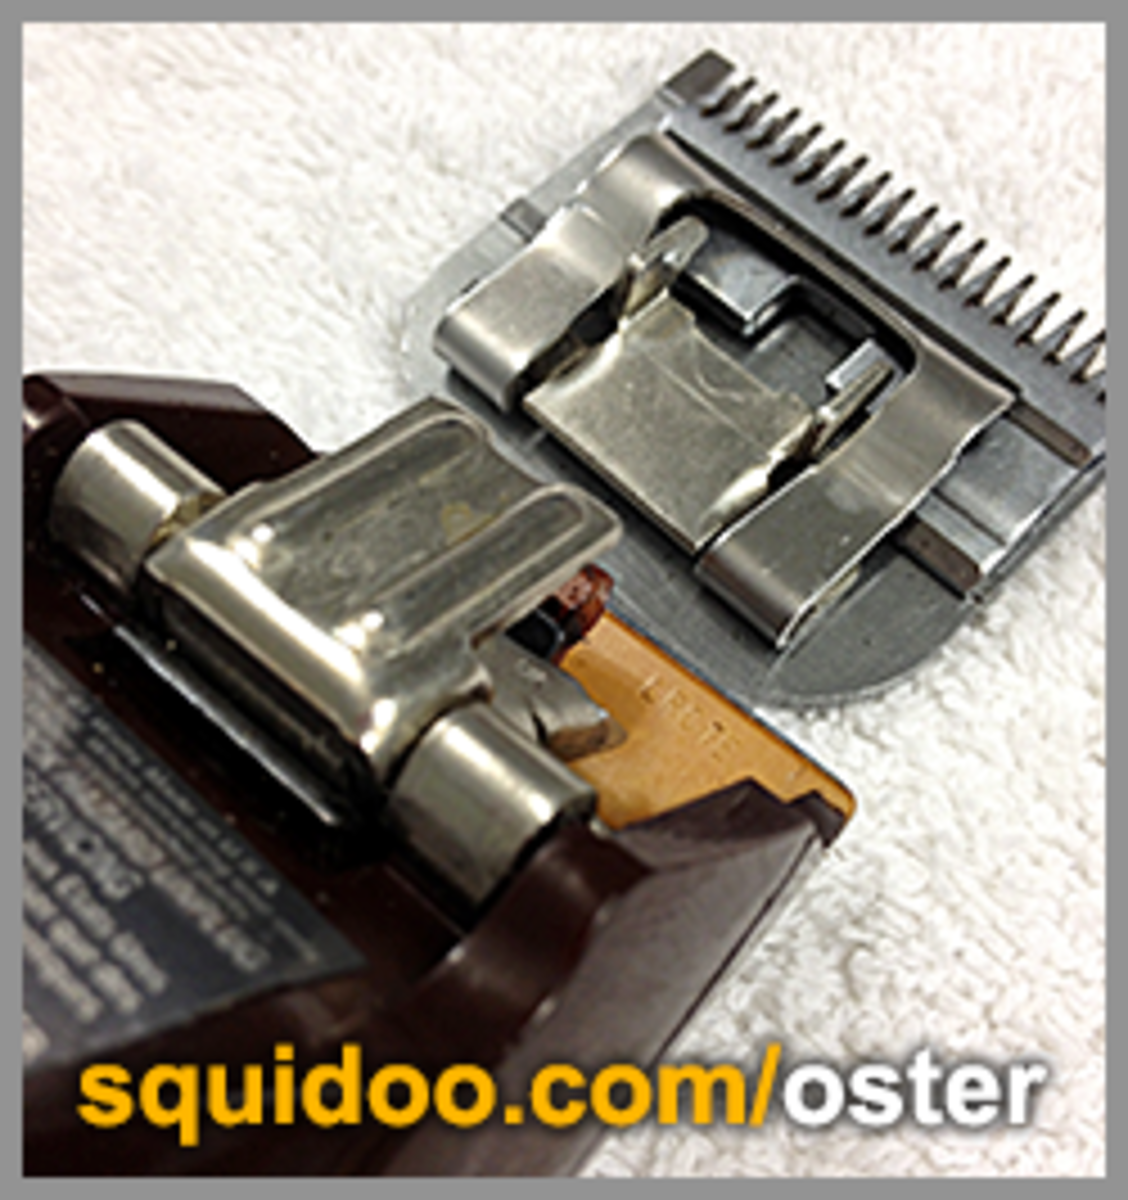 An Oster blade detached from the Classic 76